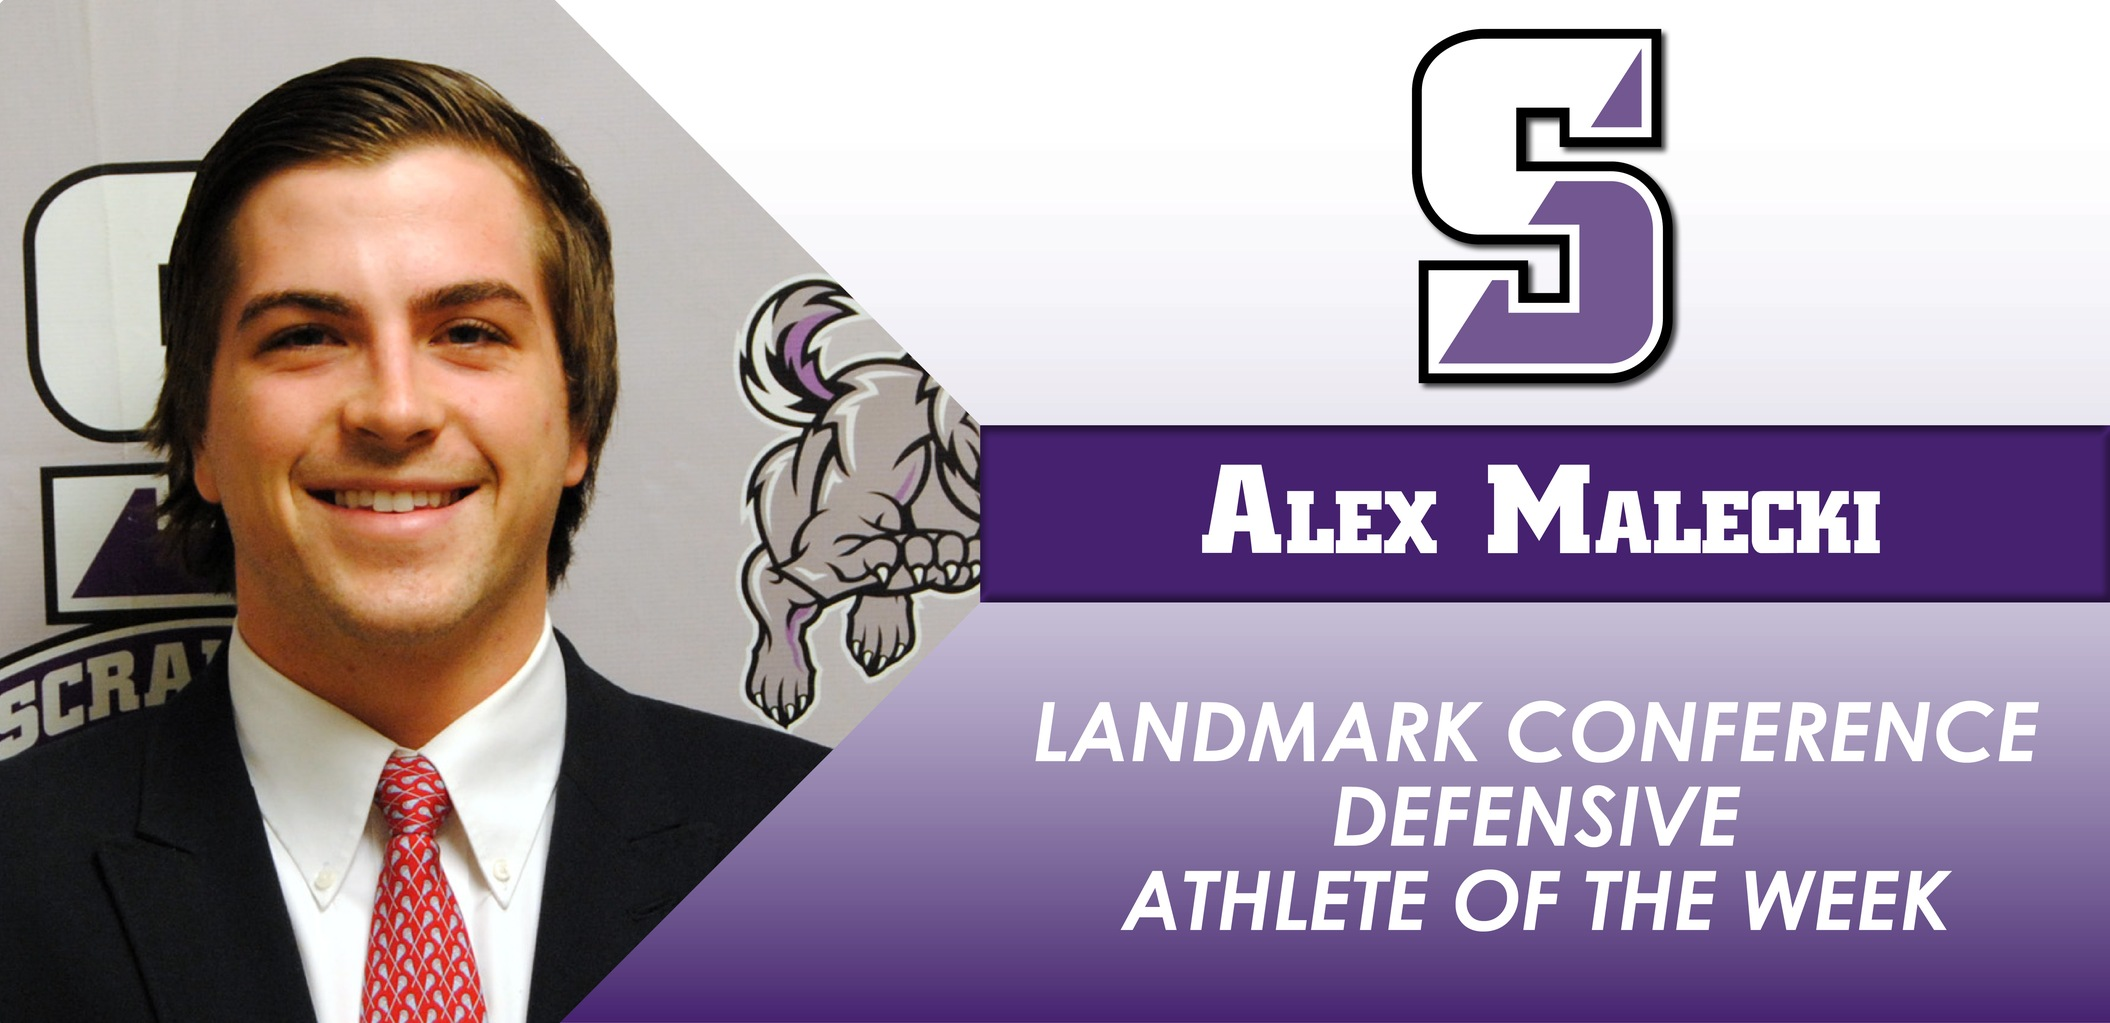 Malecki Named Landmark Conference Defensive Athlete of the Week For Men's Lacrosse